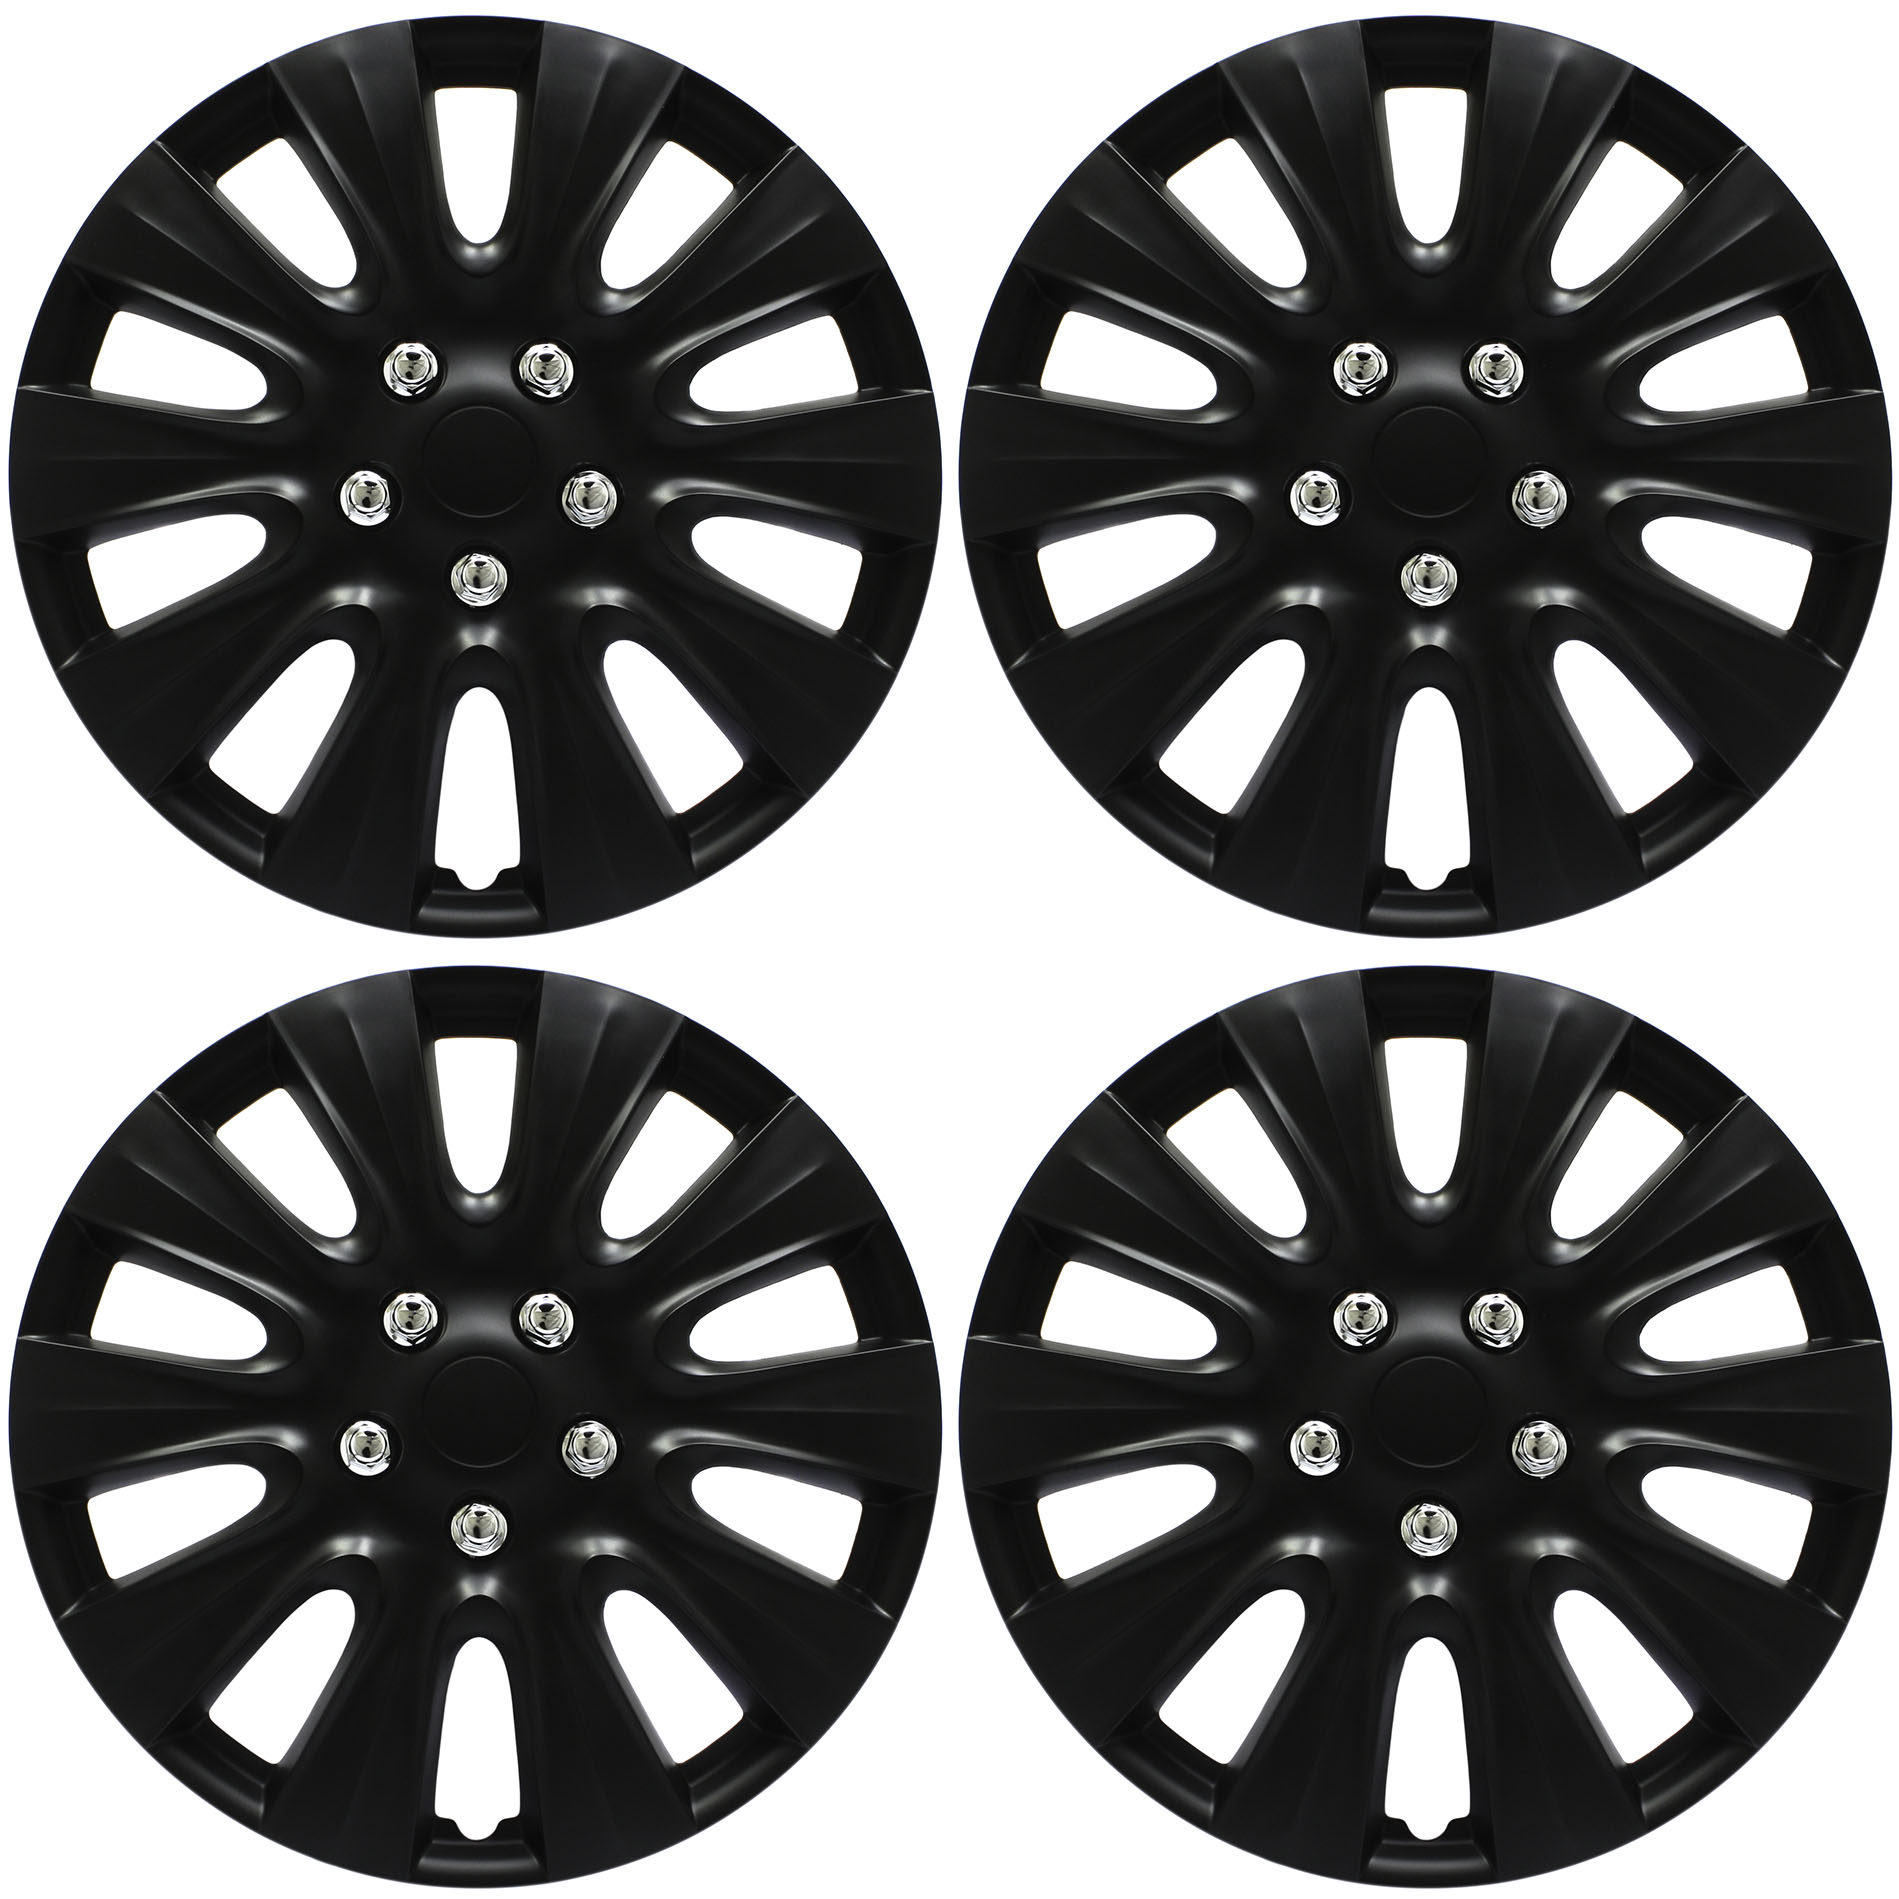 4pc hub cap black matte 17 inch for oem rim wheel replica cover 1937 Ford Headlights details about 4pc hub cap black matte 17 inch for oem rim wheel replica cover covers caps